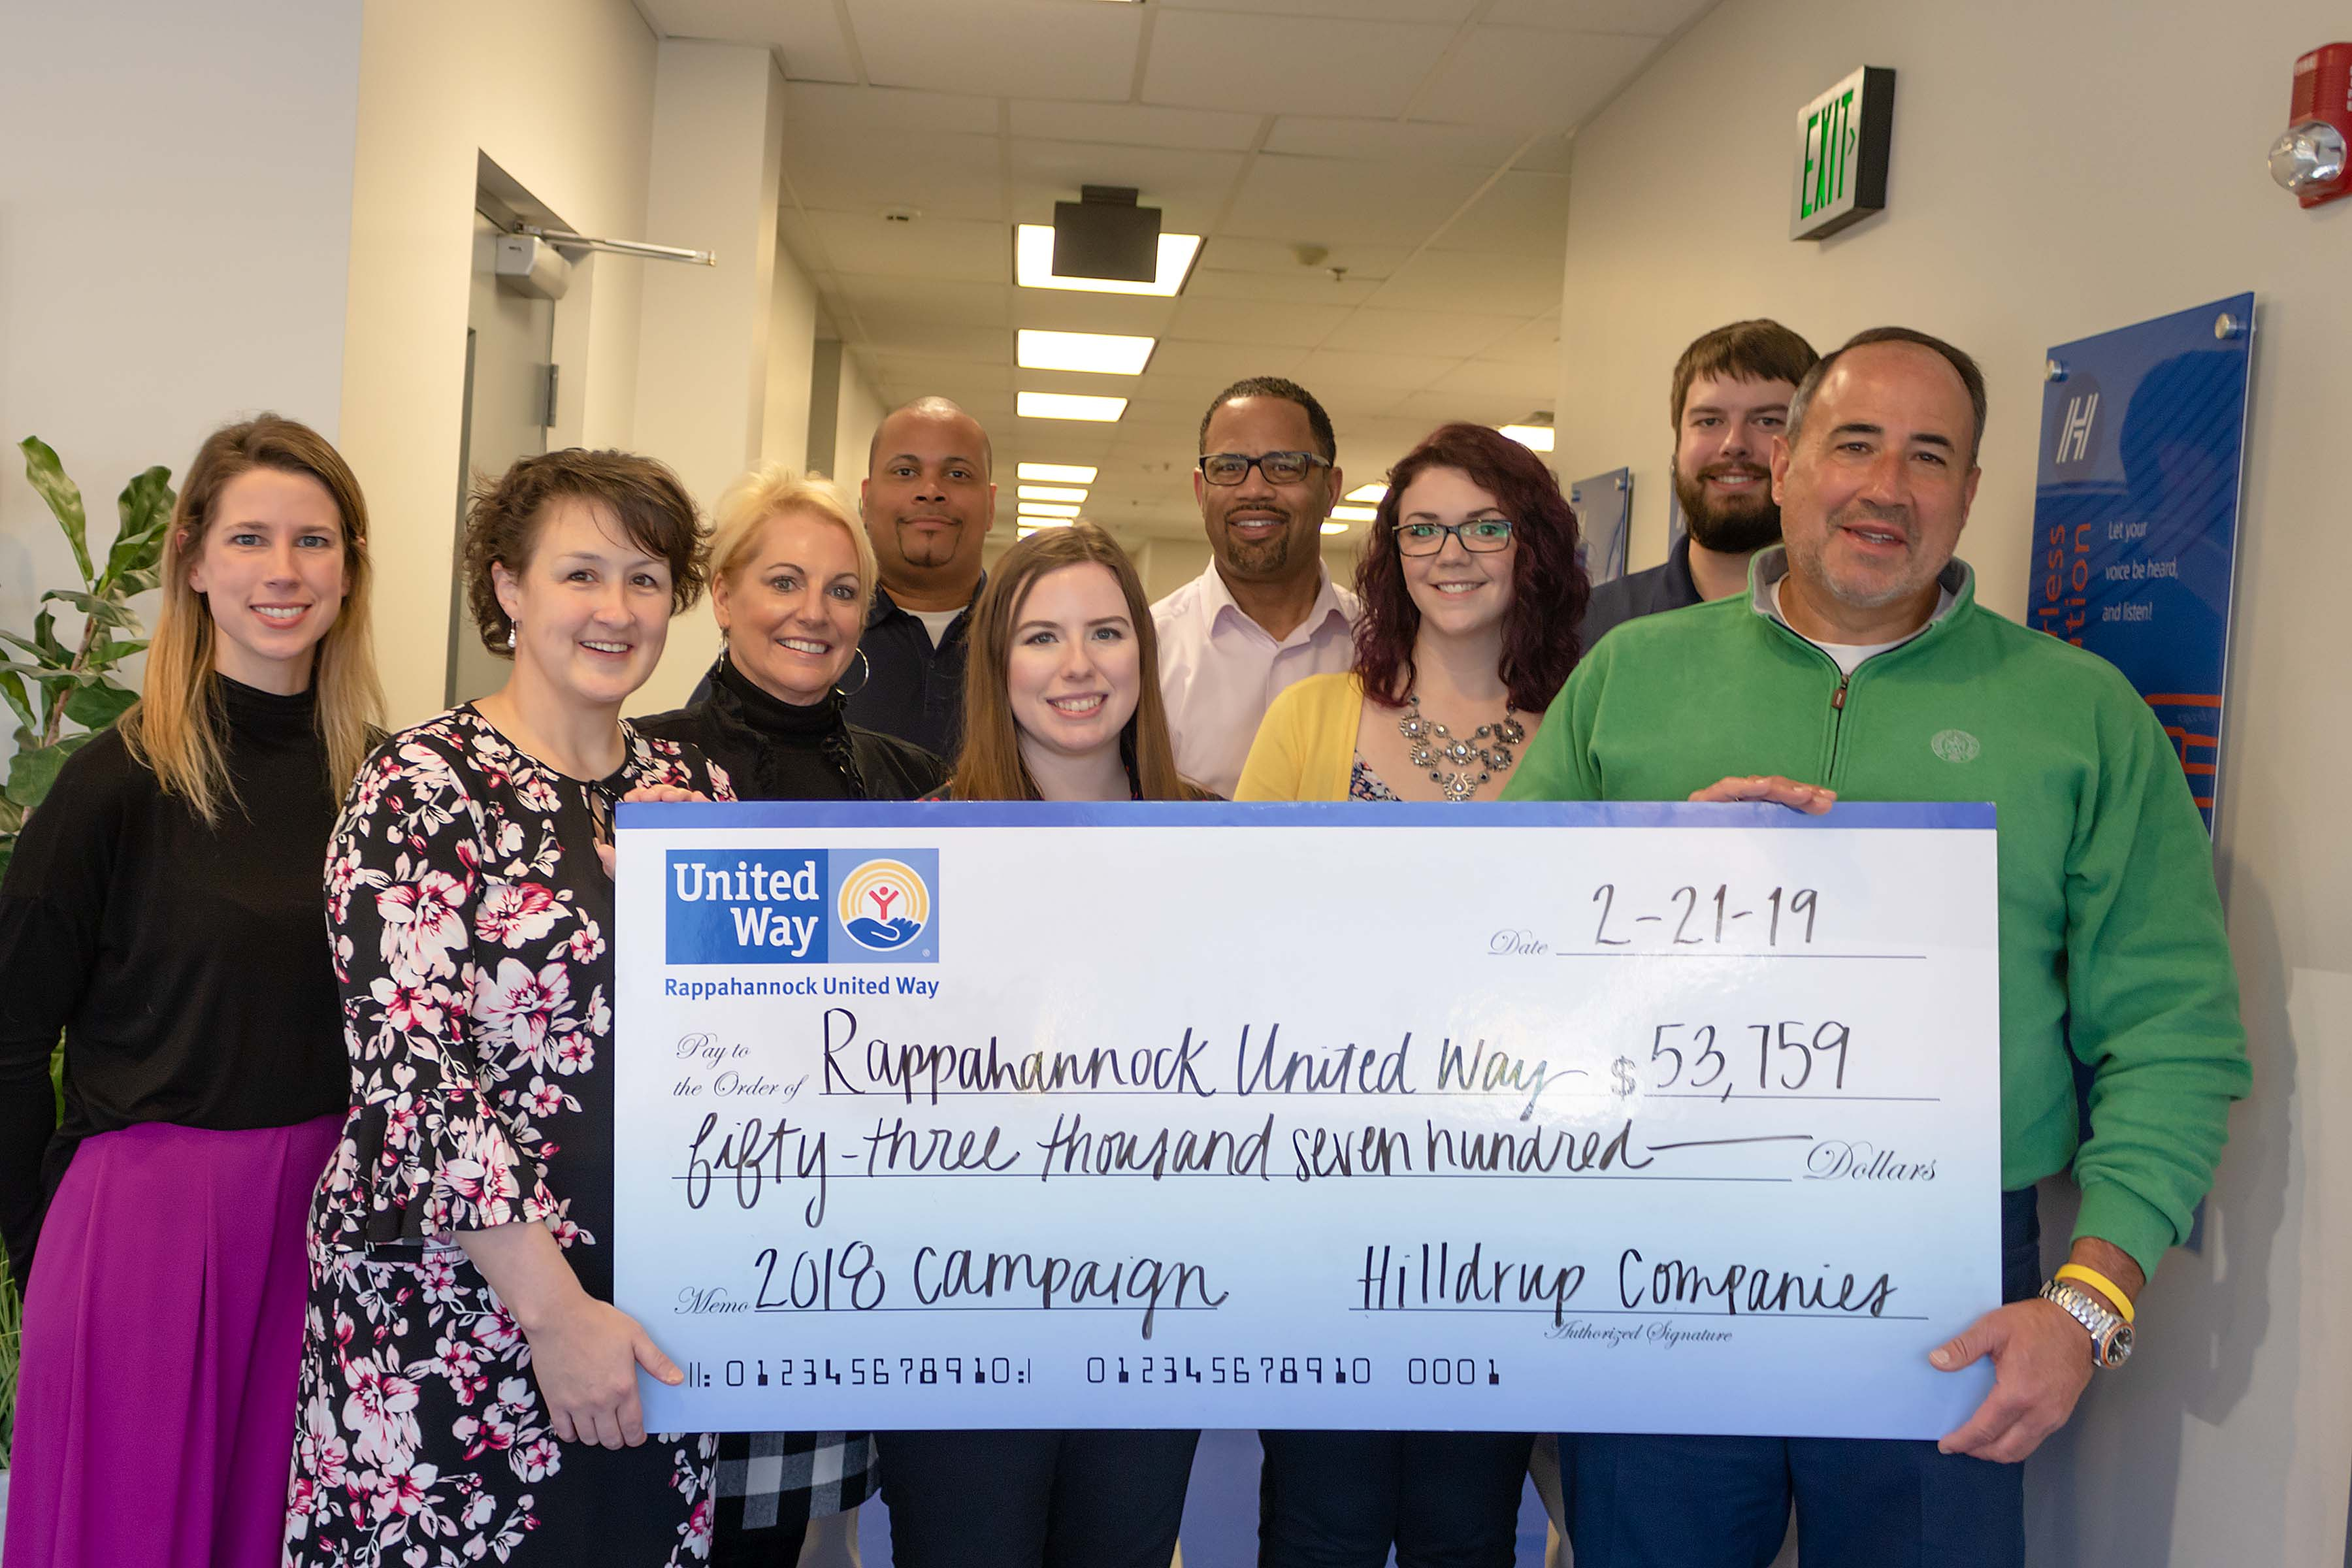 Hilldrup and Rappahannock United Way members with the 2018 campaign check